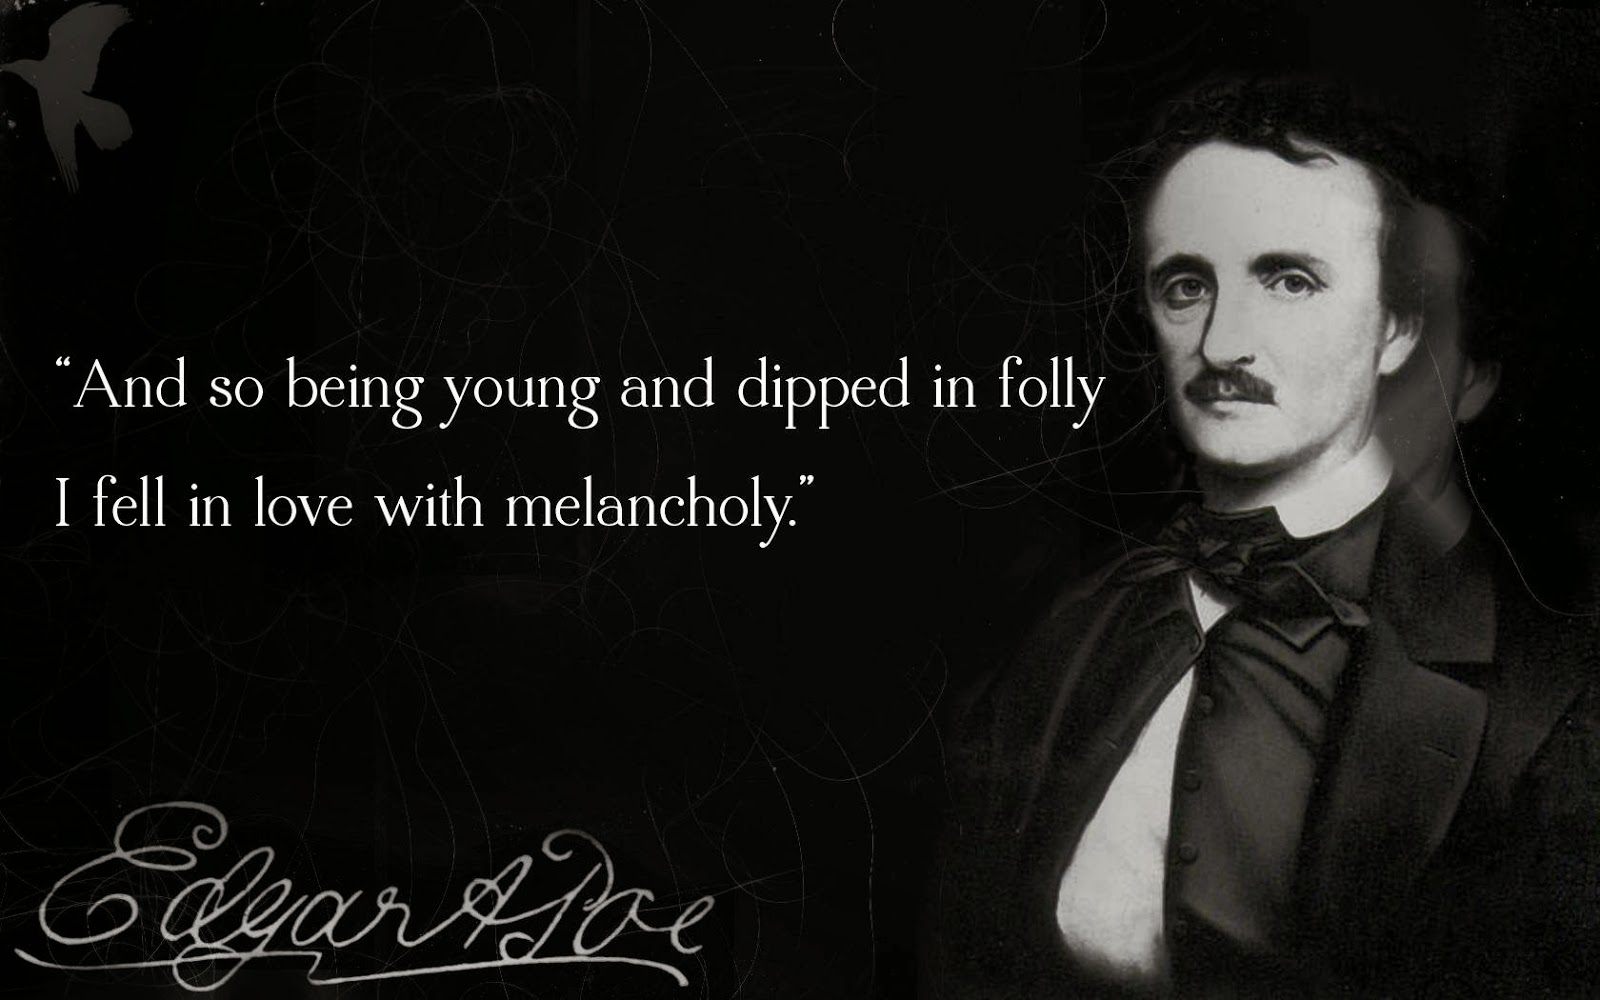 edgar allan poe s life and how Free essay: edgar allan poe is the most morbid of all american authors poe made his impact in gothic fiction, especially for the tales of the macabre of.